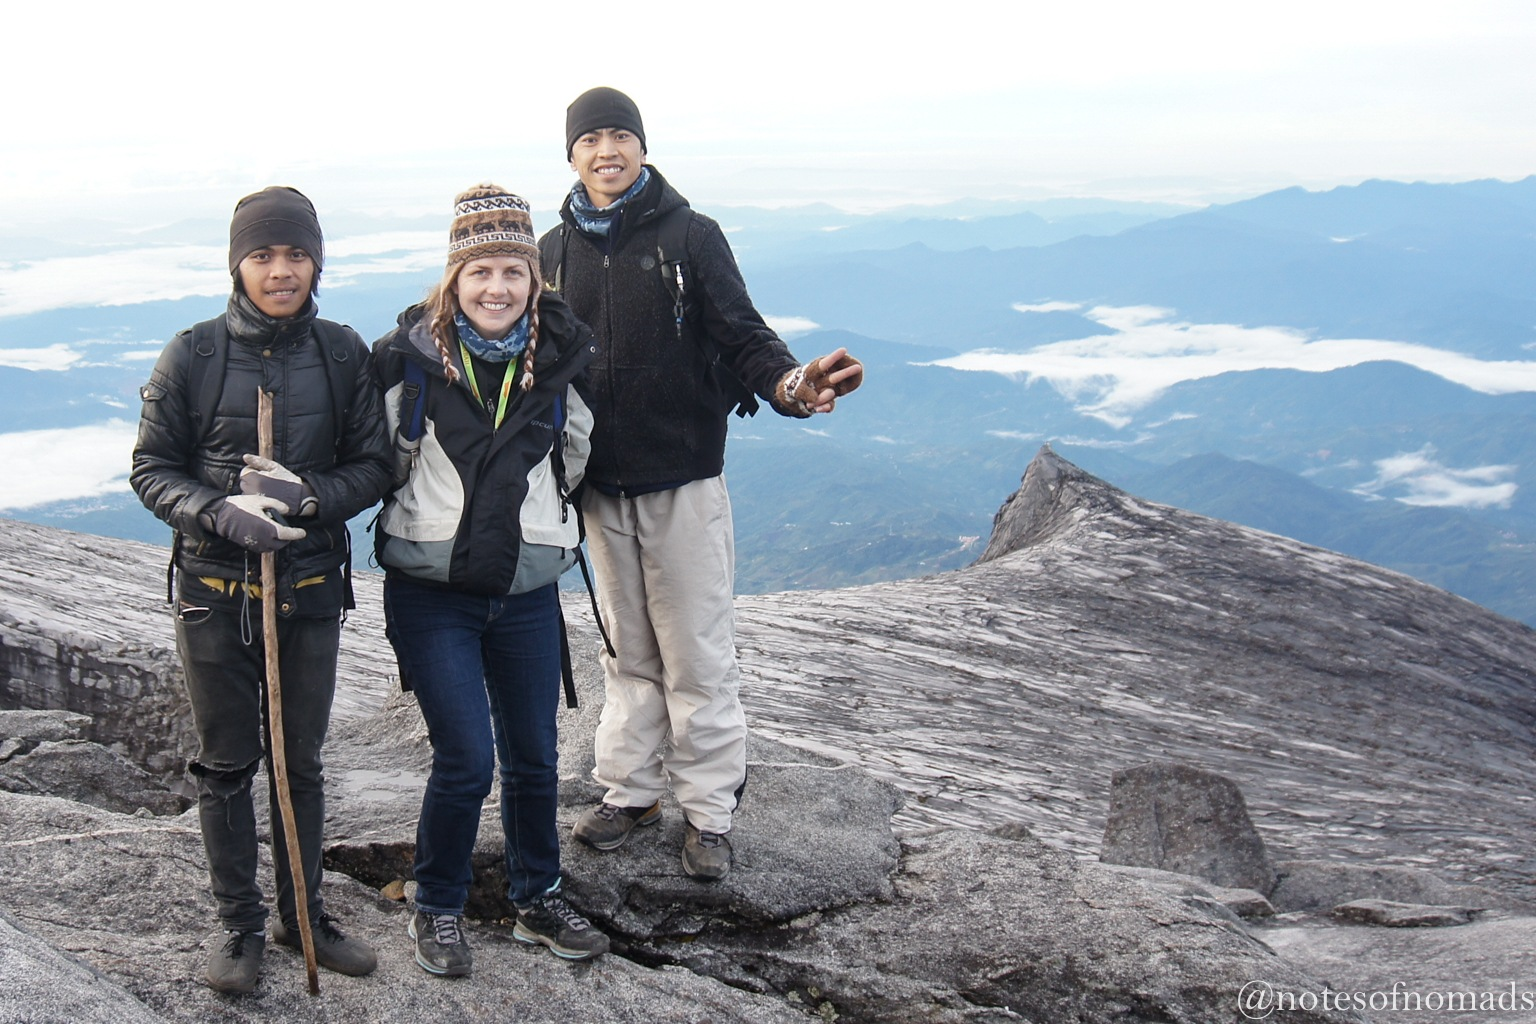 Mt Kinabalu climb experience – what to expect